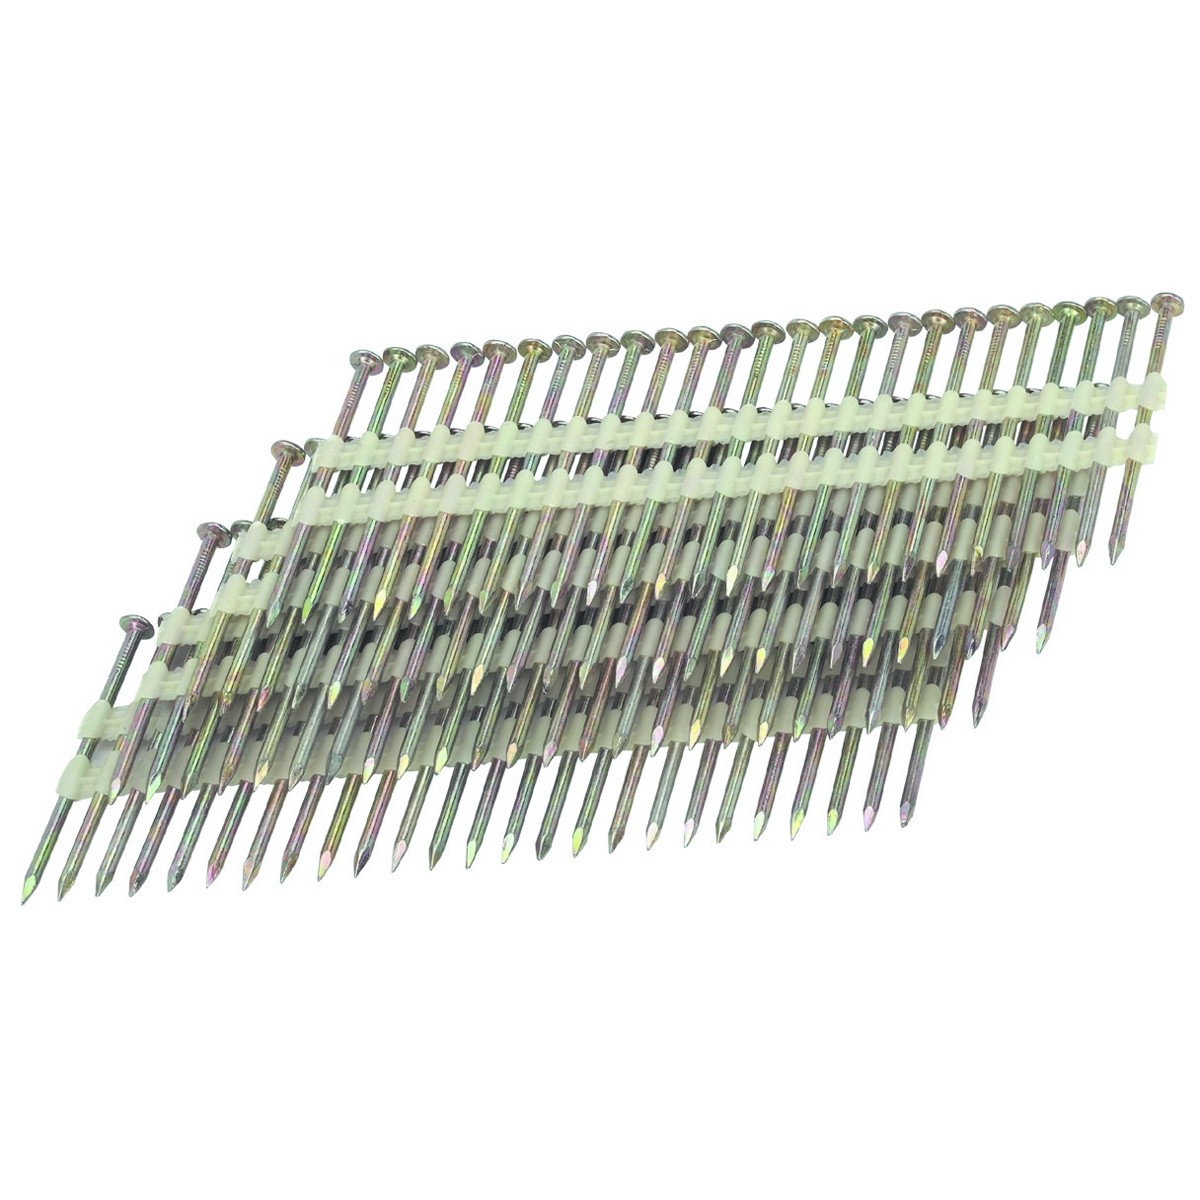 21 2-1/2 in. 10 Gauge Galvanized Smooth Shank Nails 2000 Pc